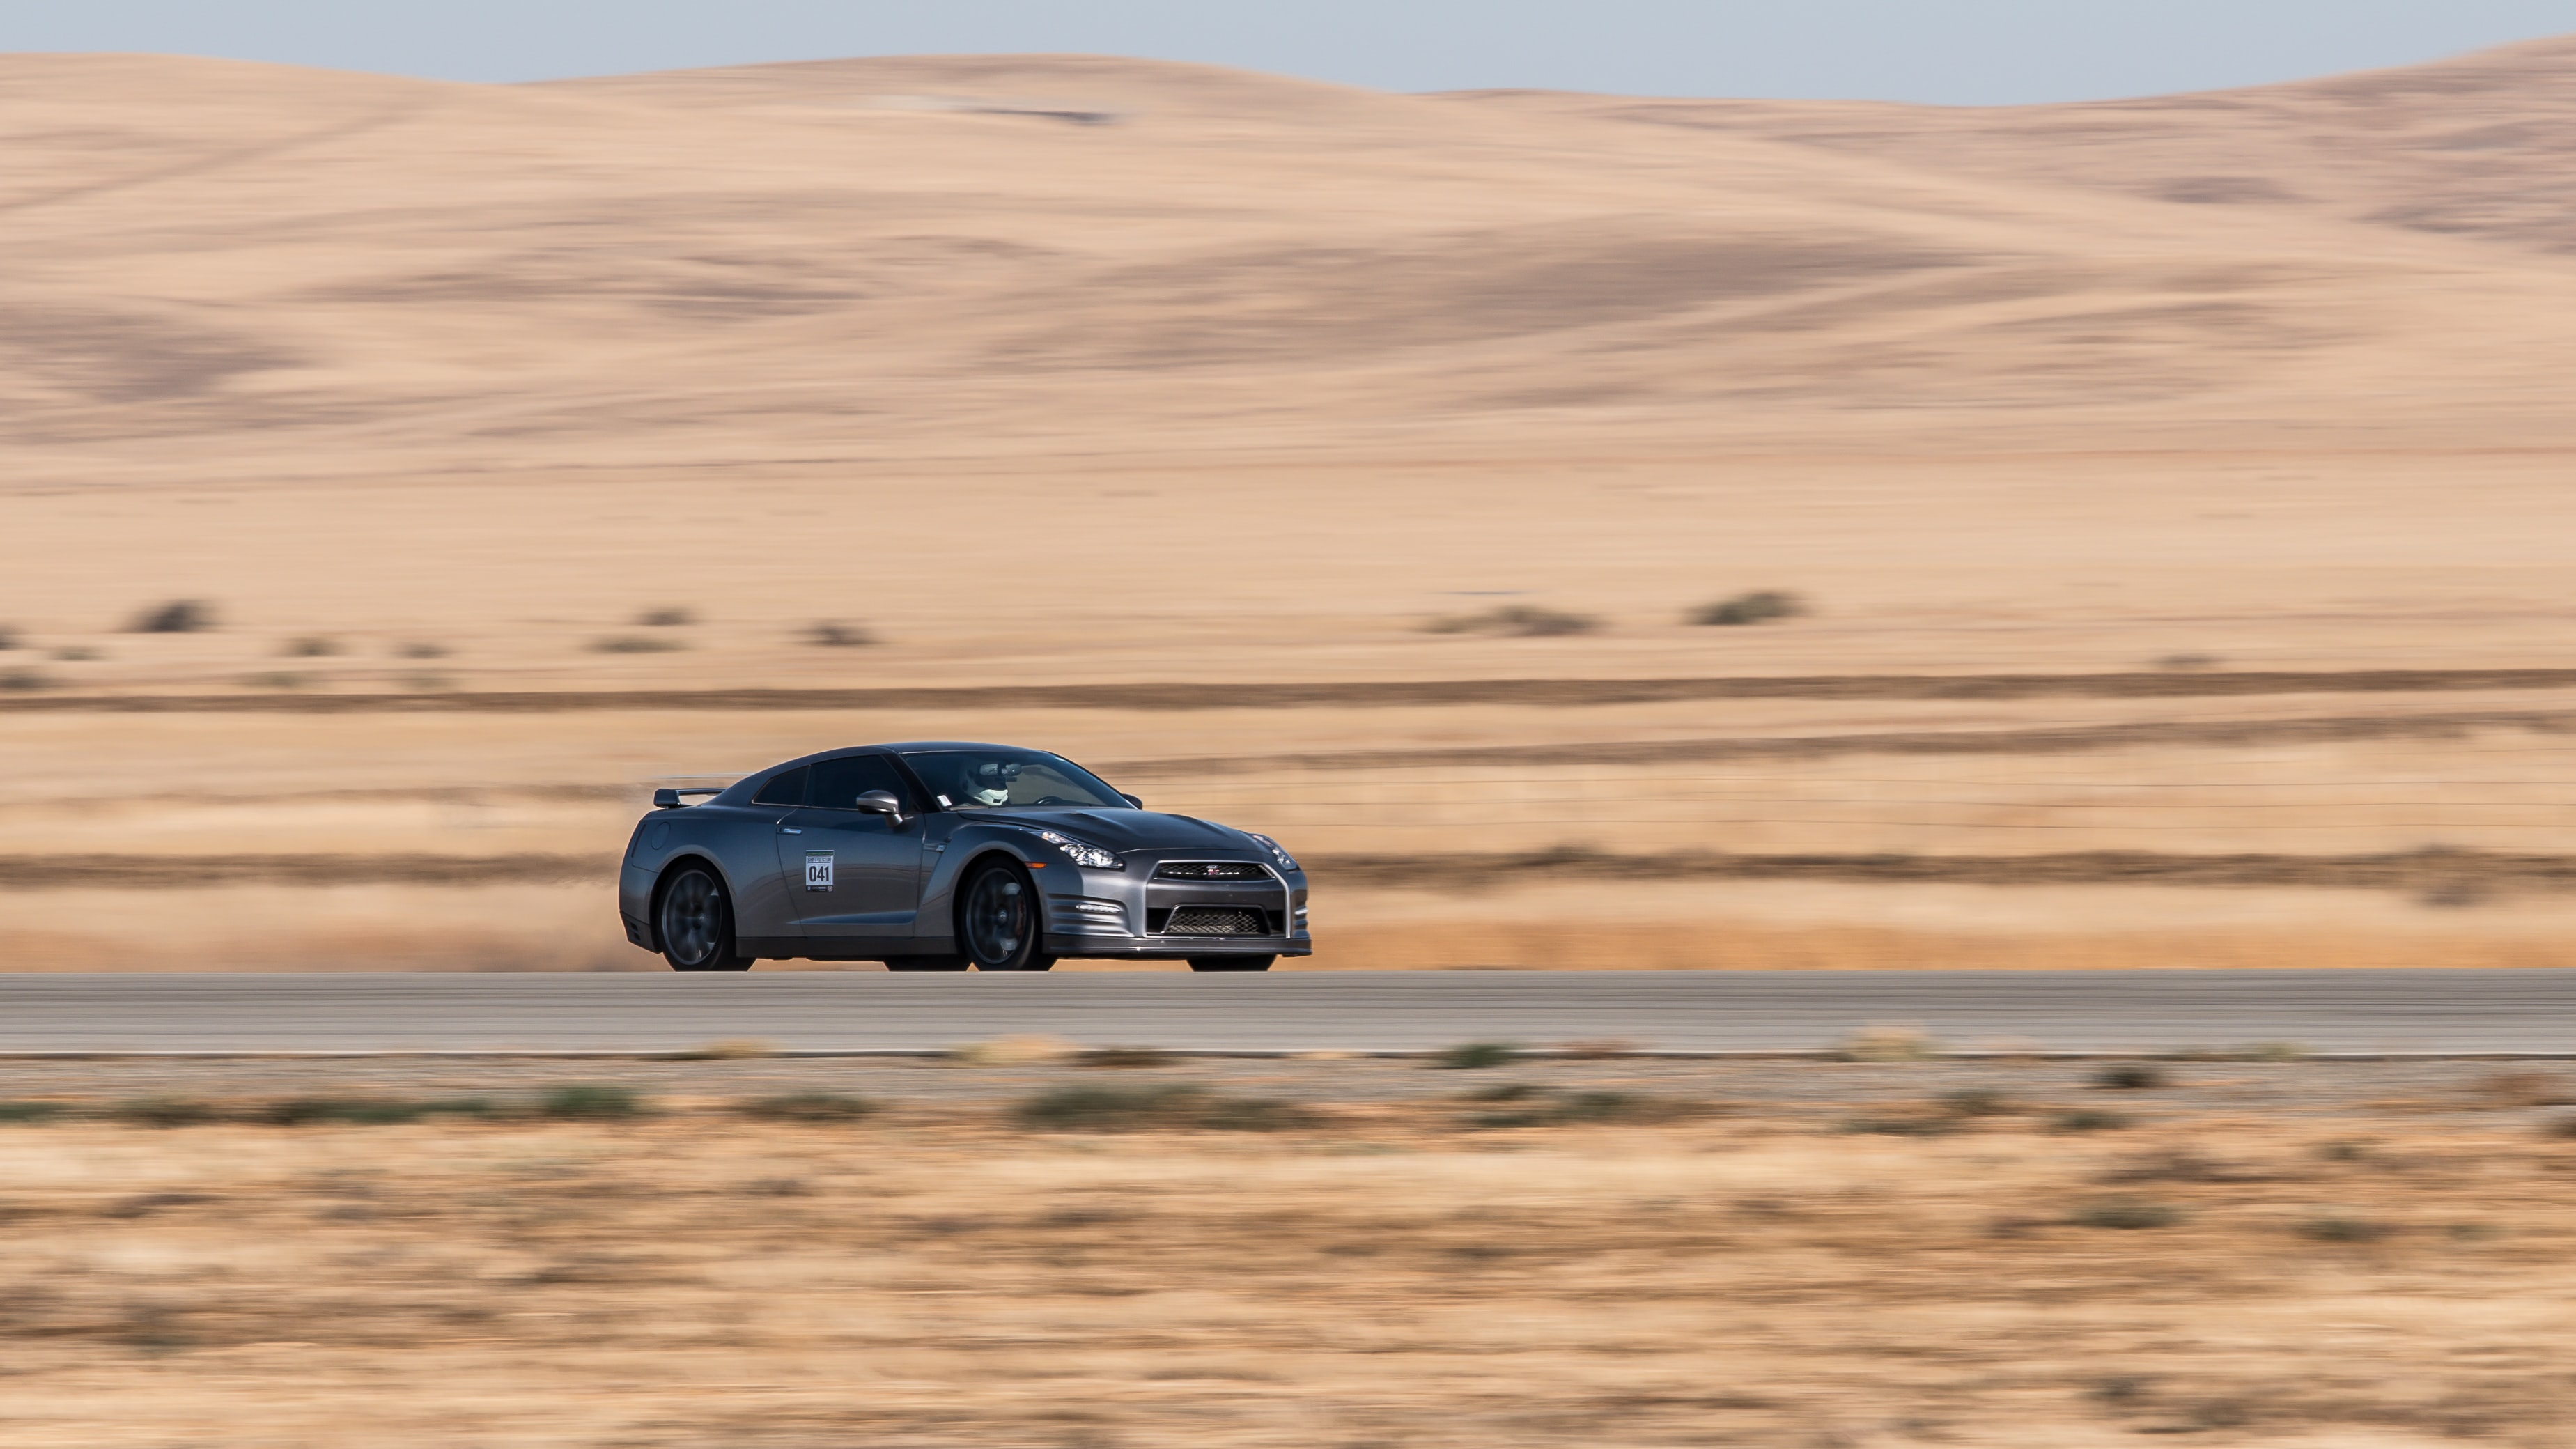 Nissan GTR passing through road on desert